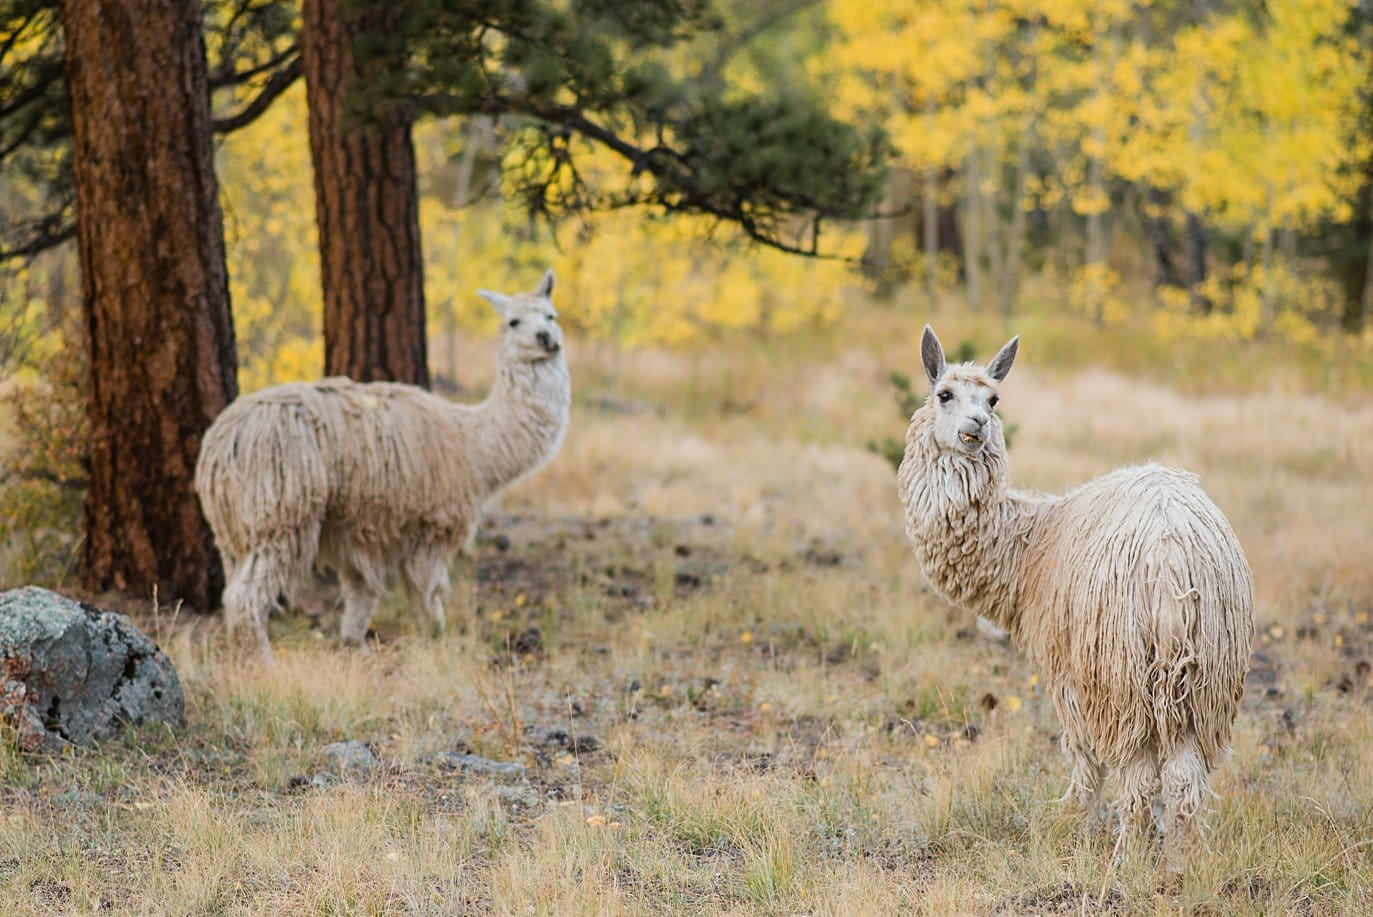 llamas watch two grooms during engagement shoot in Golden Gate Canyon by Colorado gay wedding photographer Jennie Crate